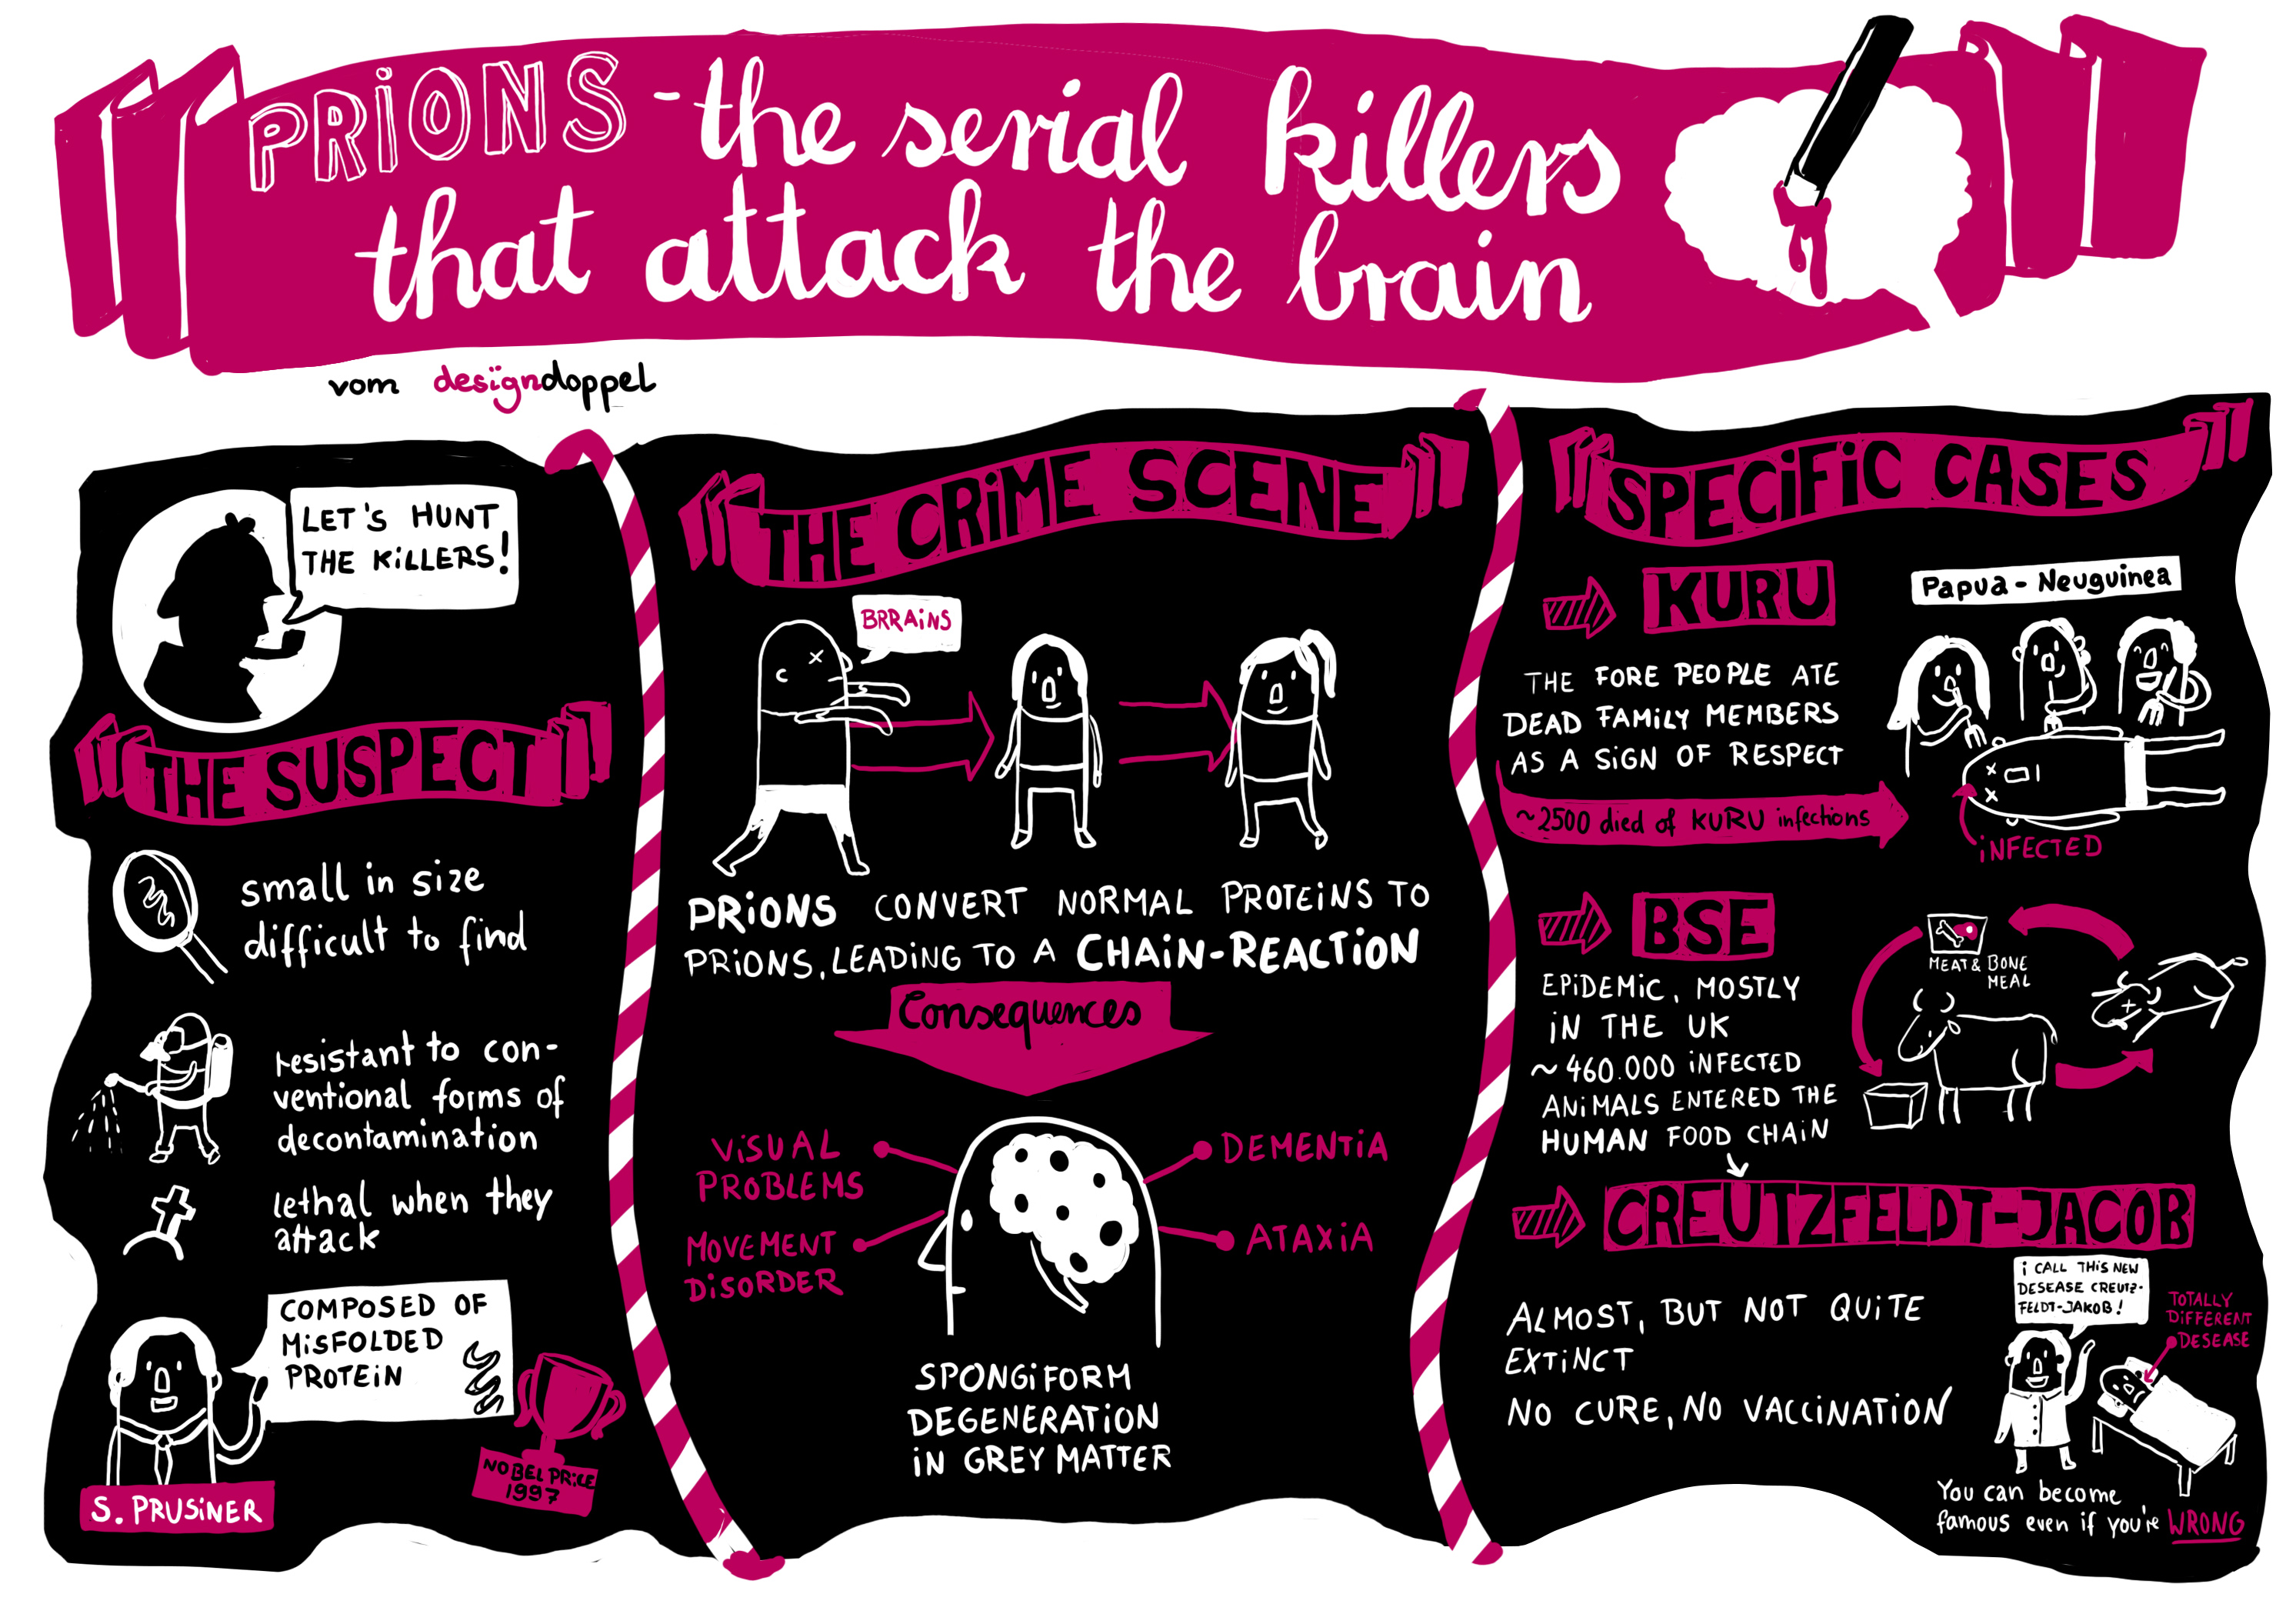 Graphic Recording digital Prions Serial Killers that attack Brain